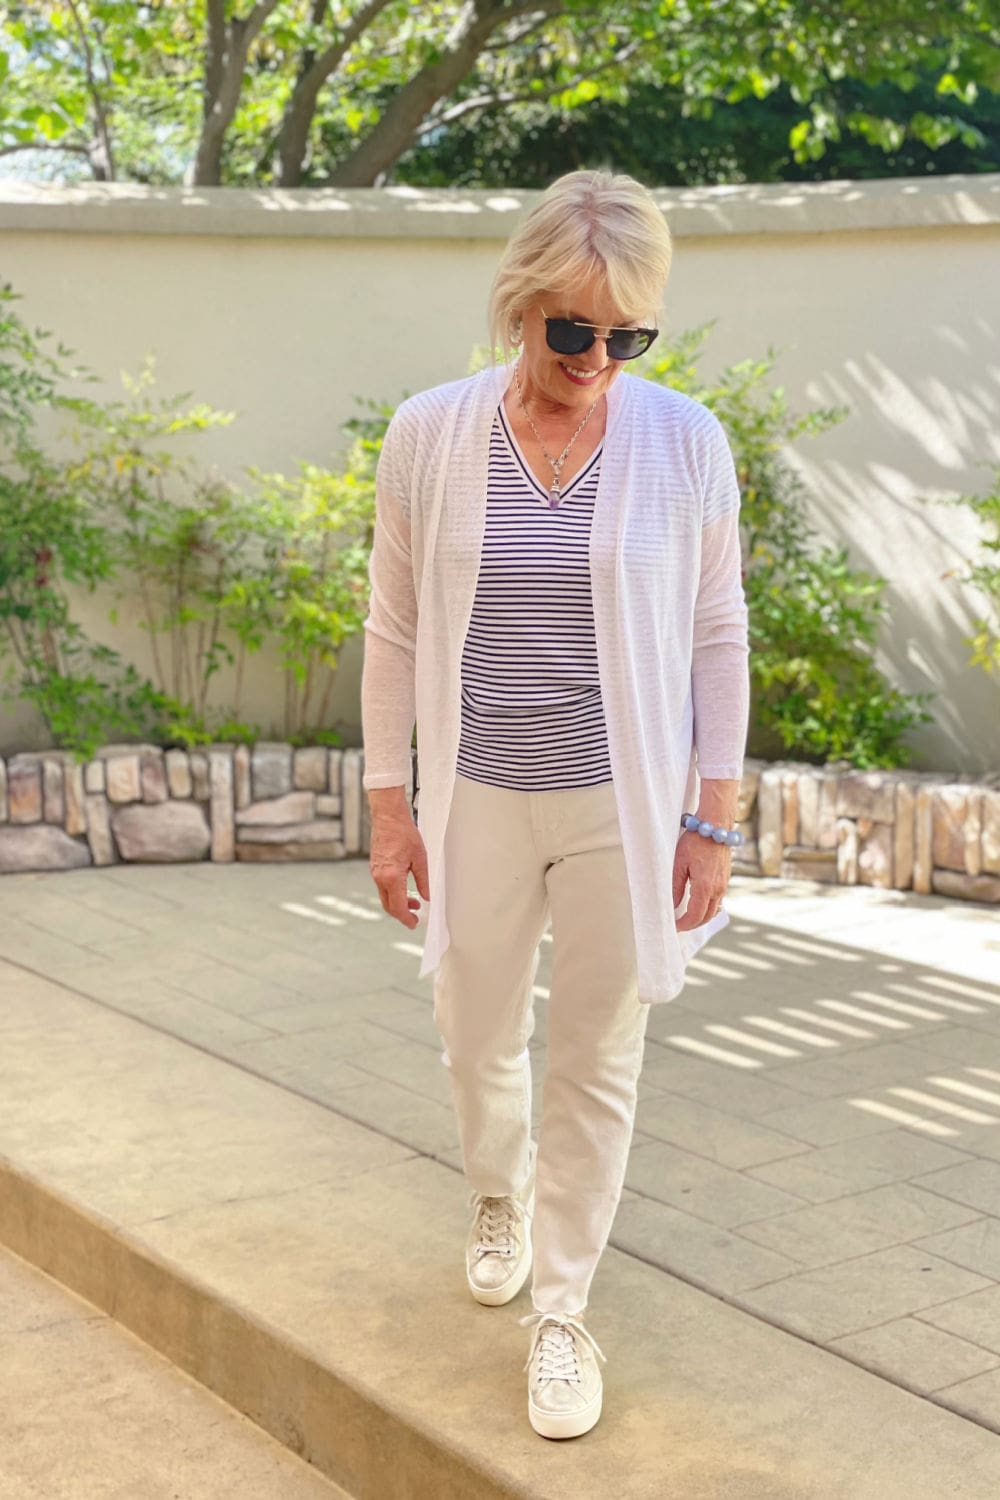 woman walking in courtyard wearing modern white jeans and striped tee